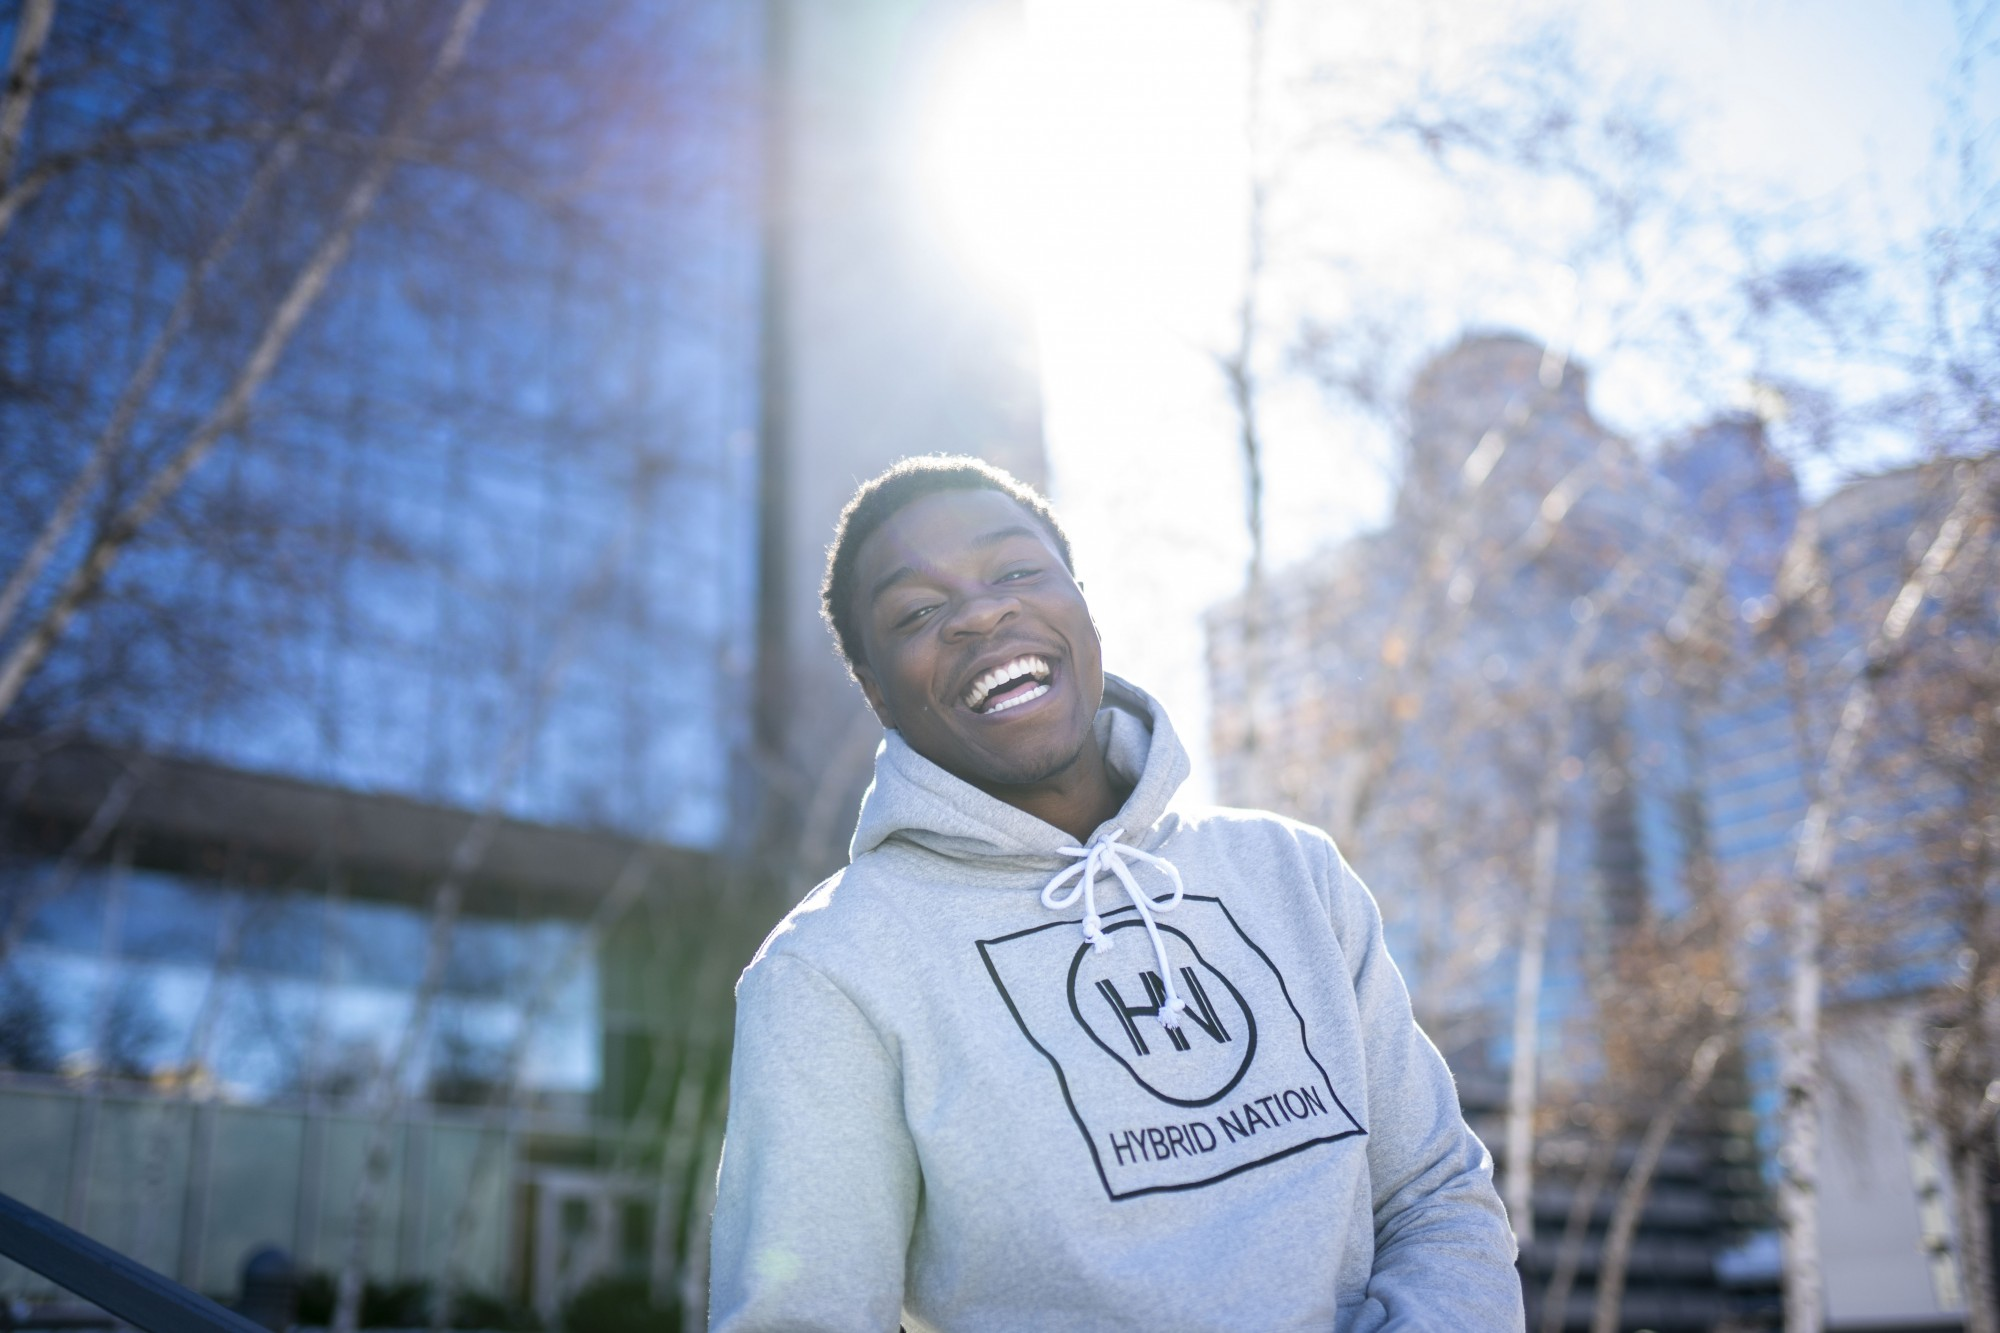 Local artist Bayo poses for a portrait in downtown Minneapolis on Sunday, Feb. 23.